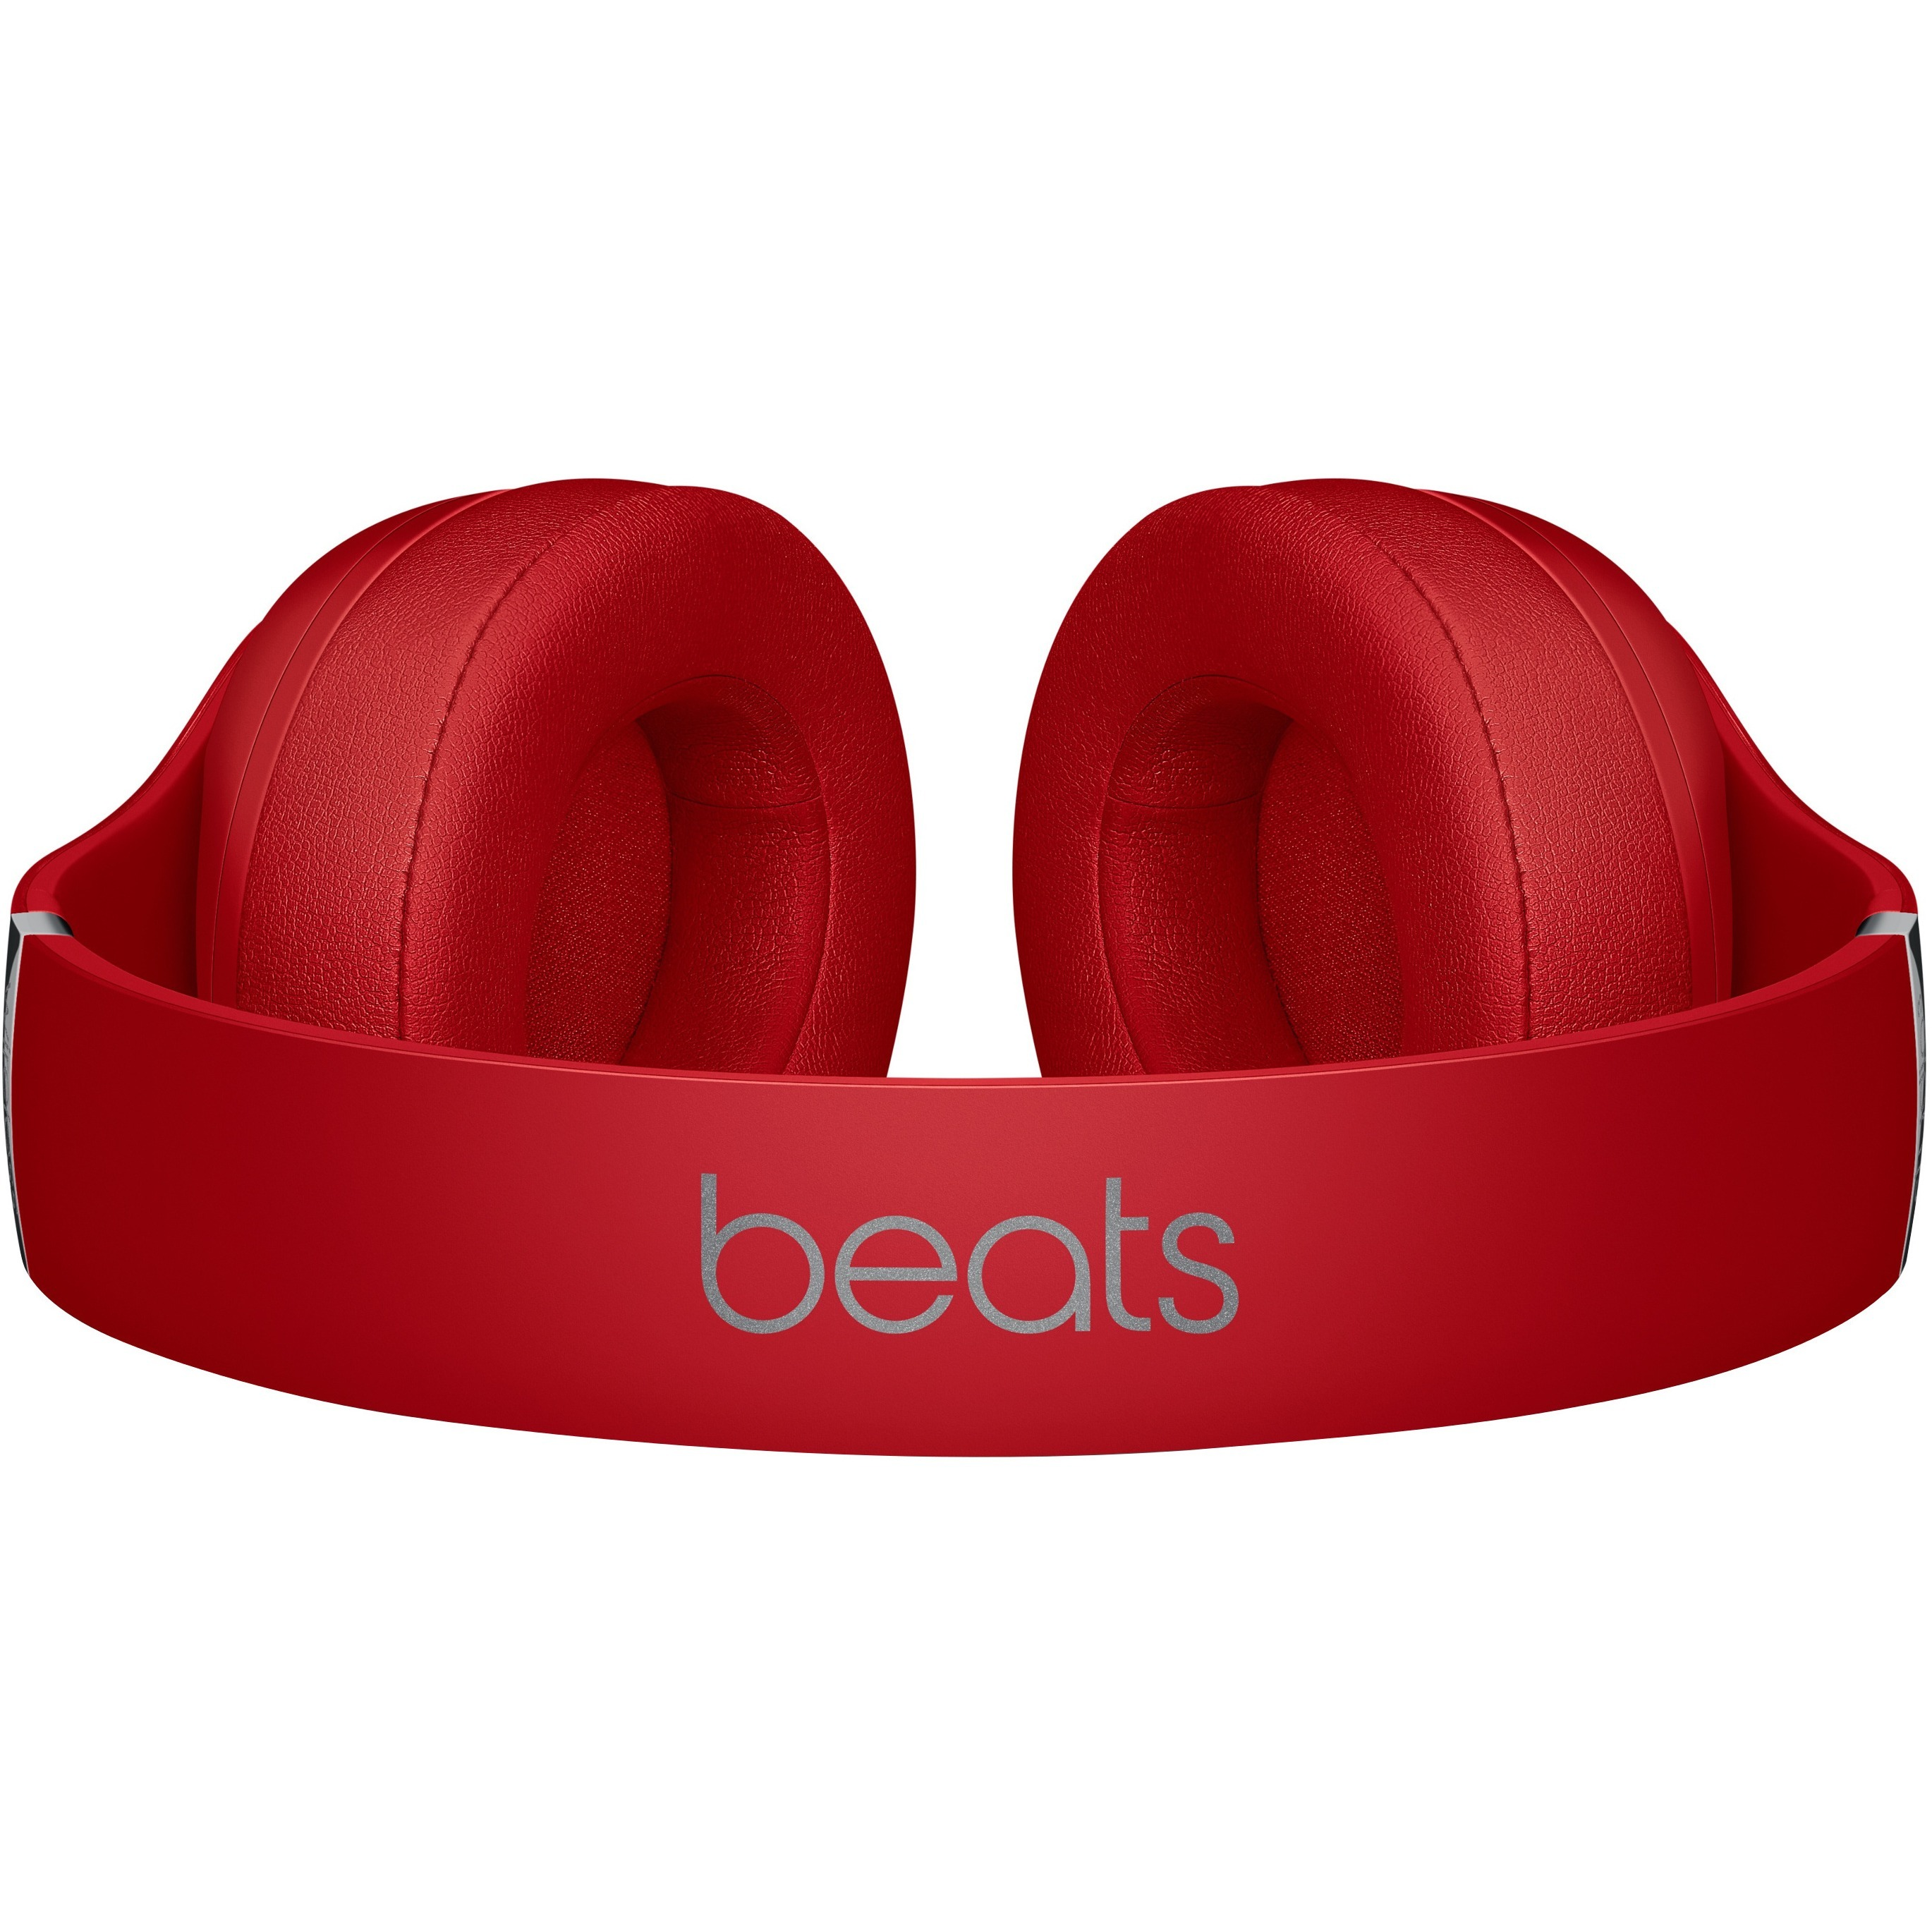 Beats by Dr. Dre Studio3 Wired/Wireless Bluetooth Stereo Headset - Over-the-head - Circumaural - Red